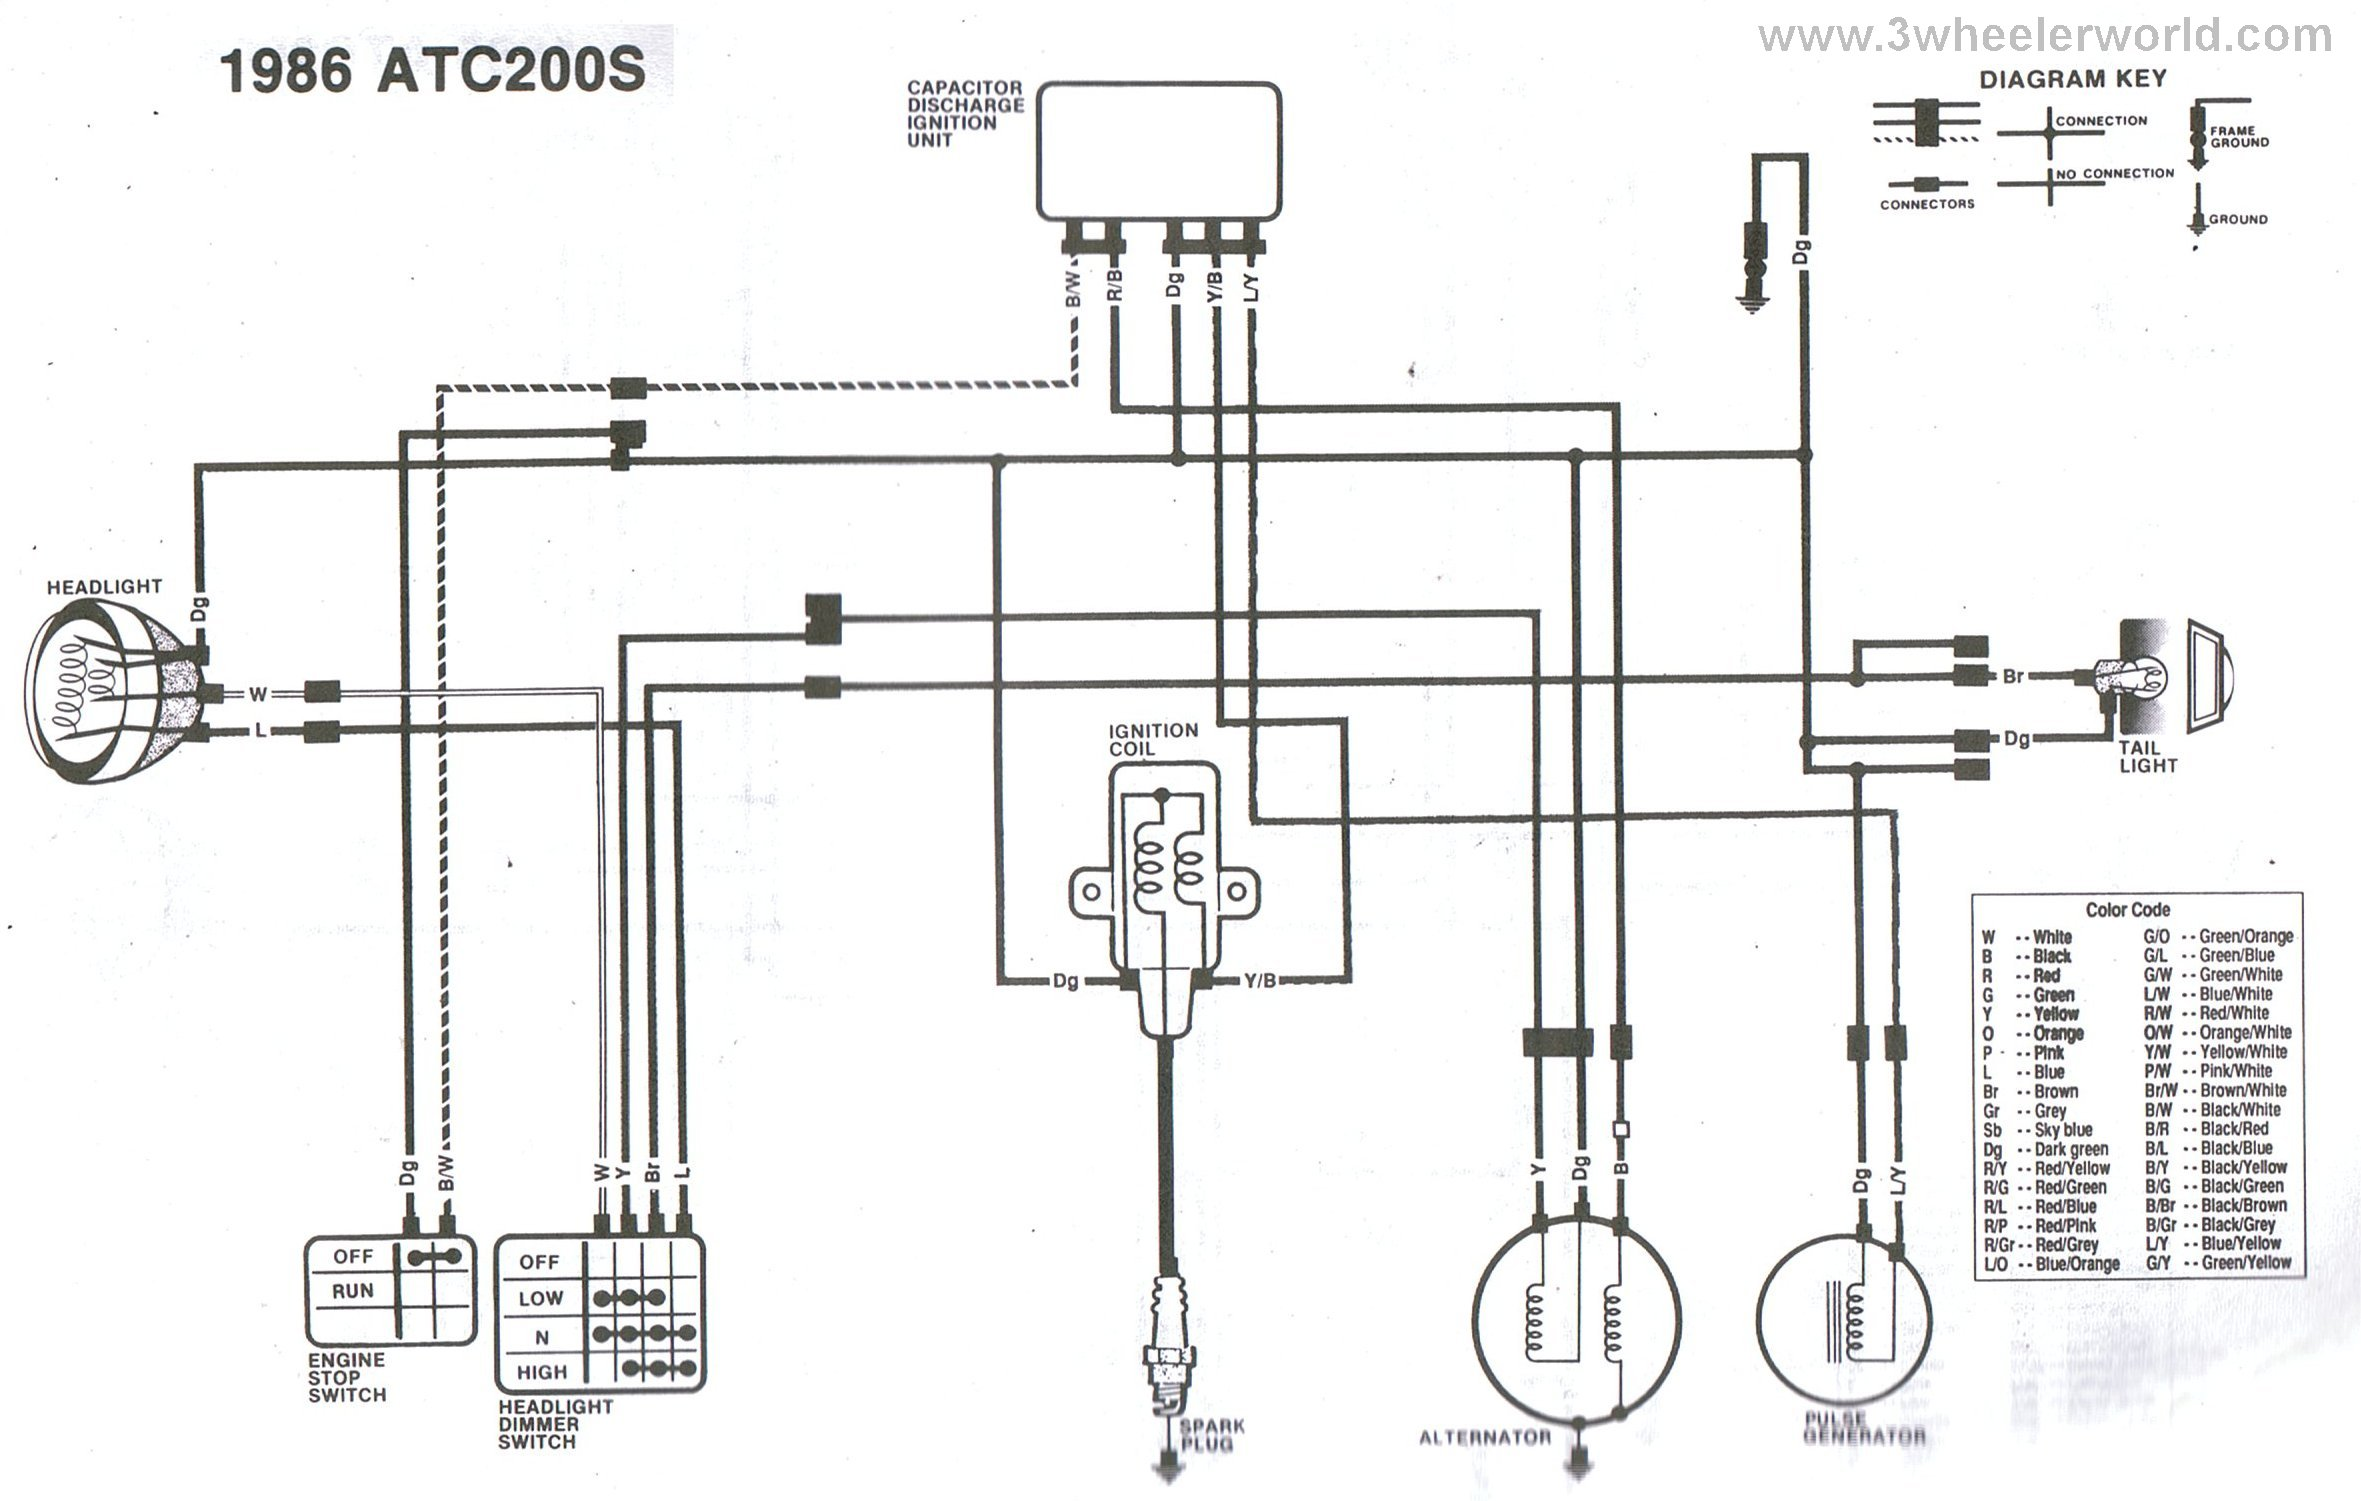 ATC200Sx86 suzuki quad wiring diagram suzuki wiring diagrams instruction 1987 suzuki 250 quadrunner wiring diagram at readyjetset.co